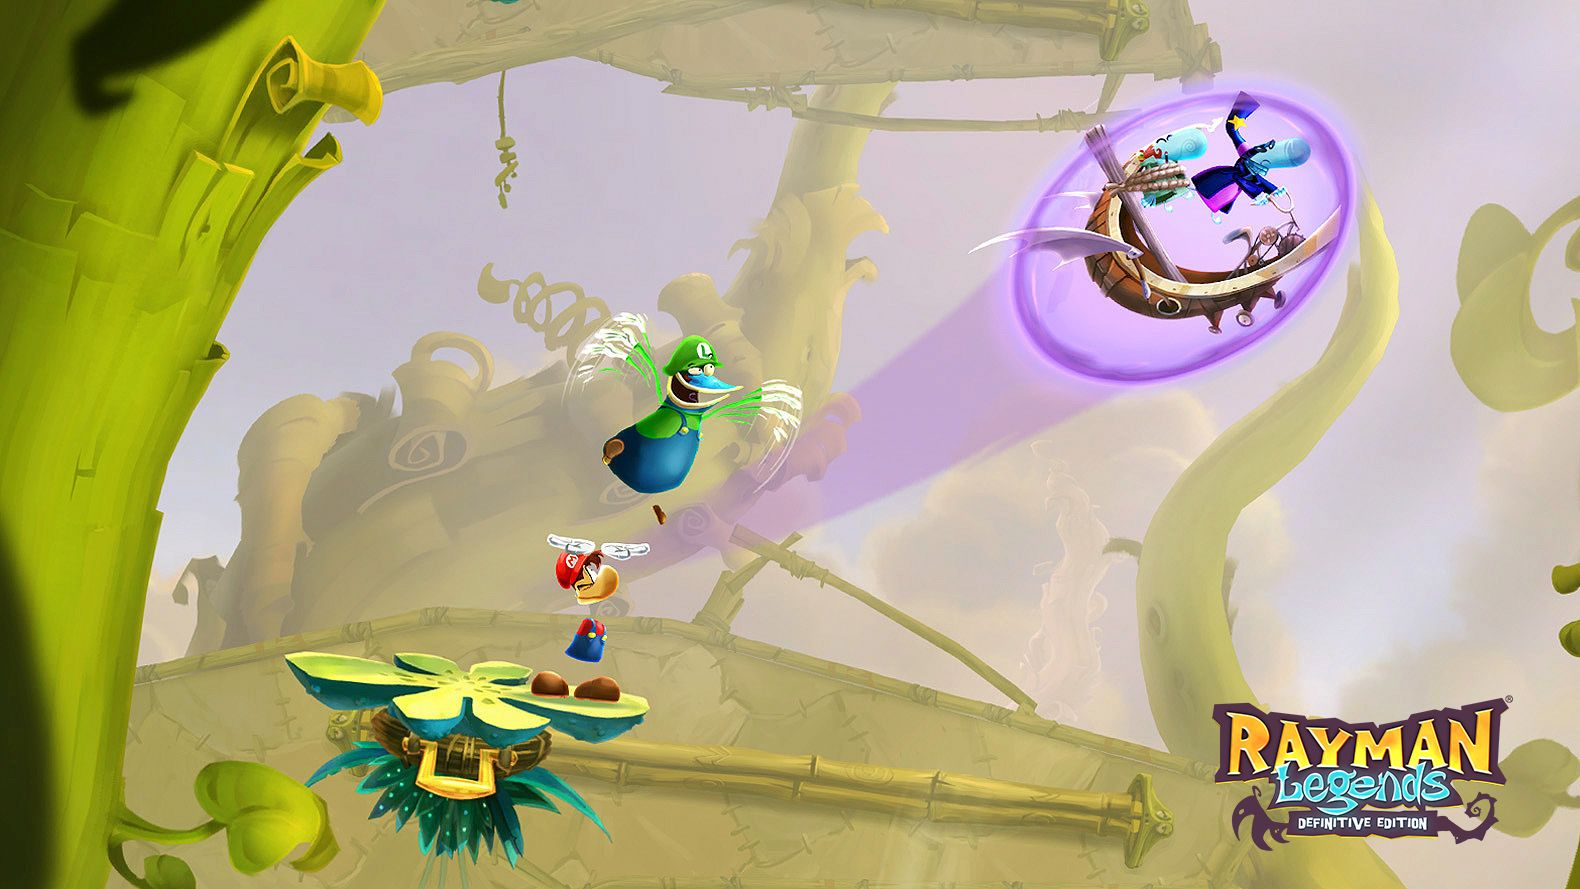 ubisoft monopoly for nintendo switch announced rayman